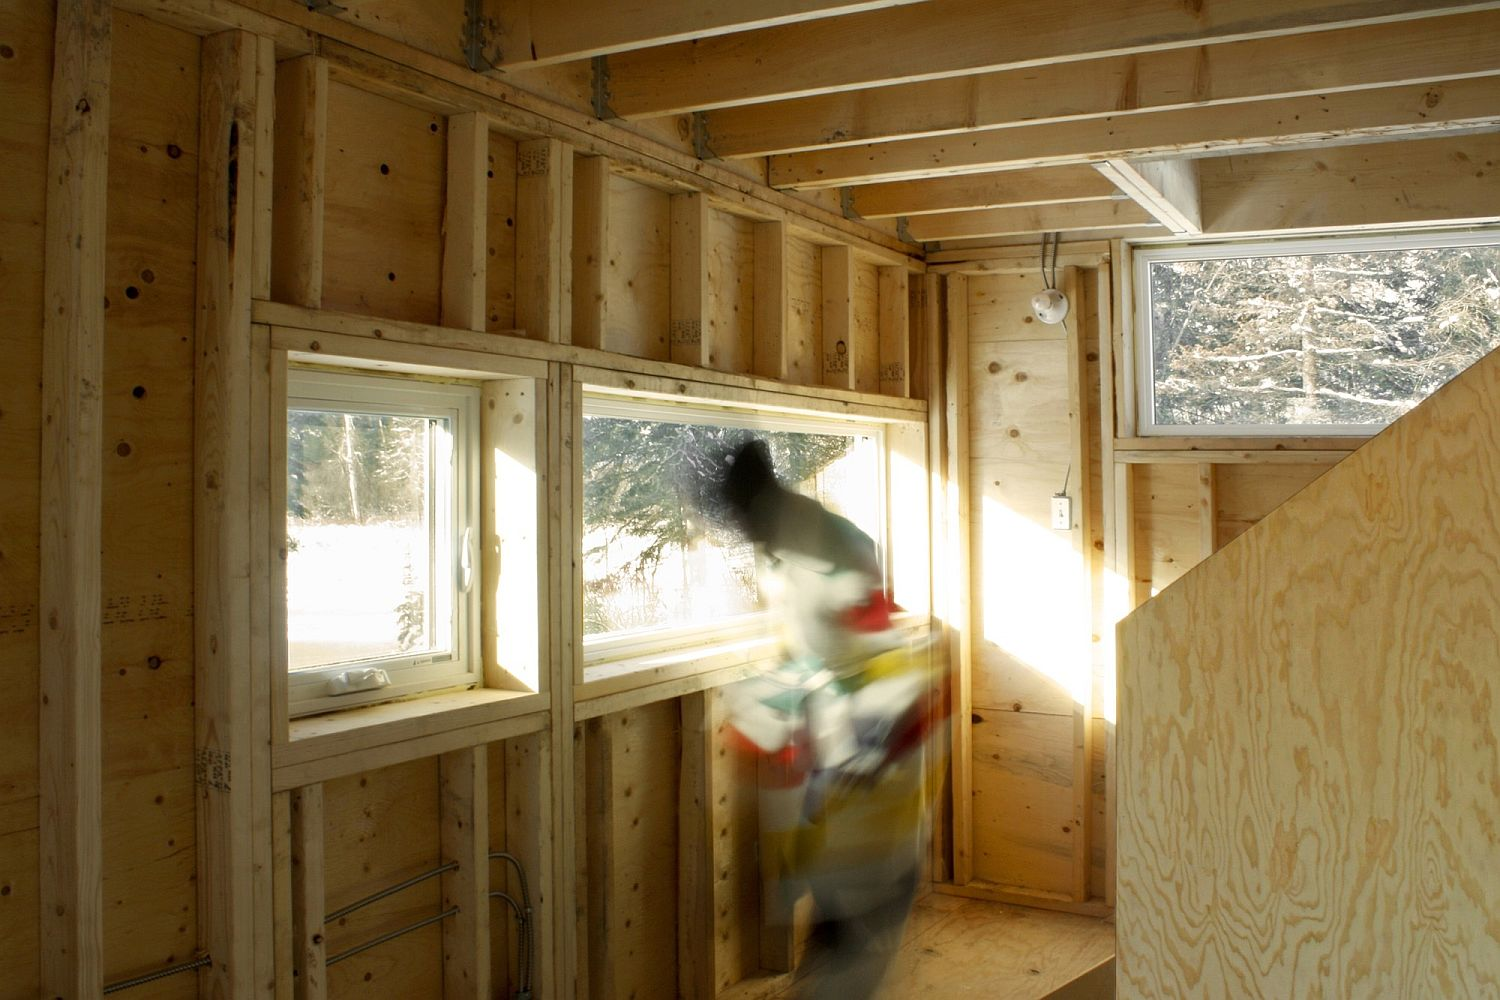 Plywood sheathing gives the interior a warm, cozy interior to the cabin